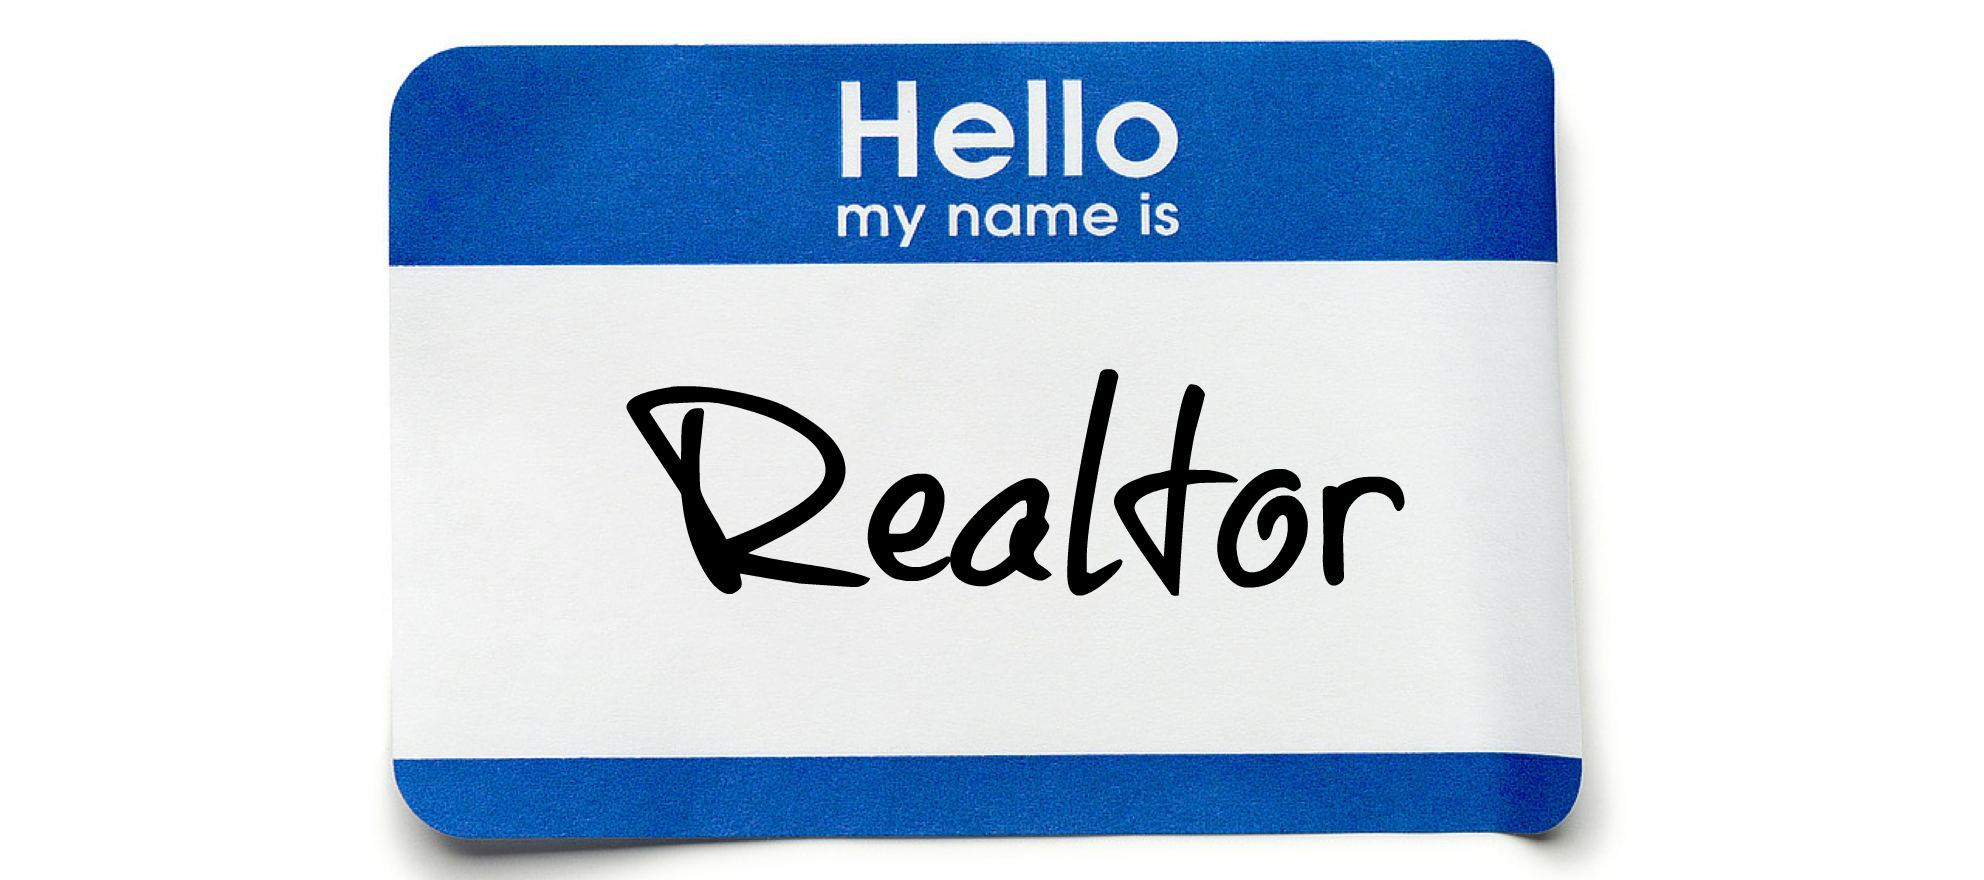 'Realtor' isn't a 4-letter word